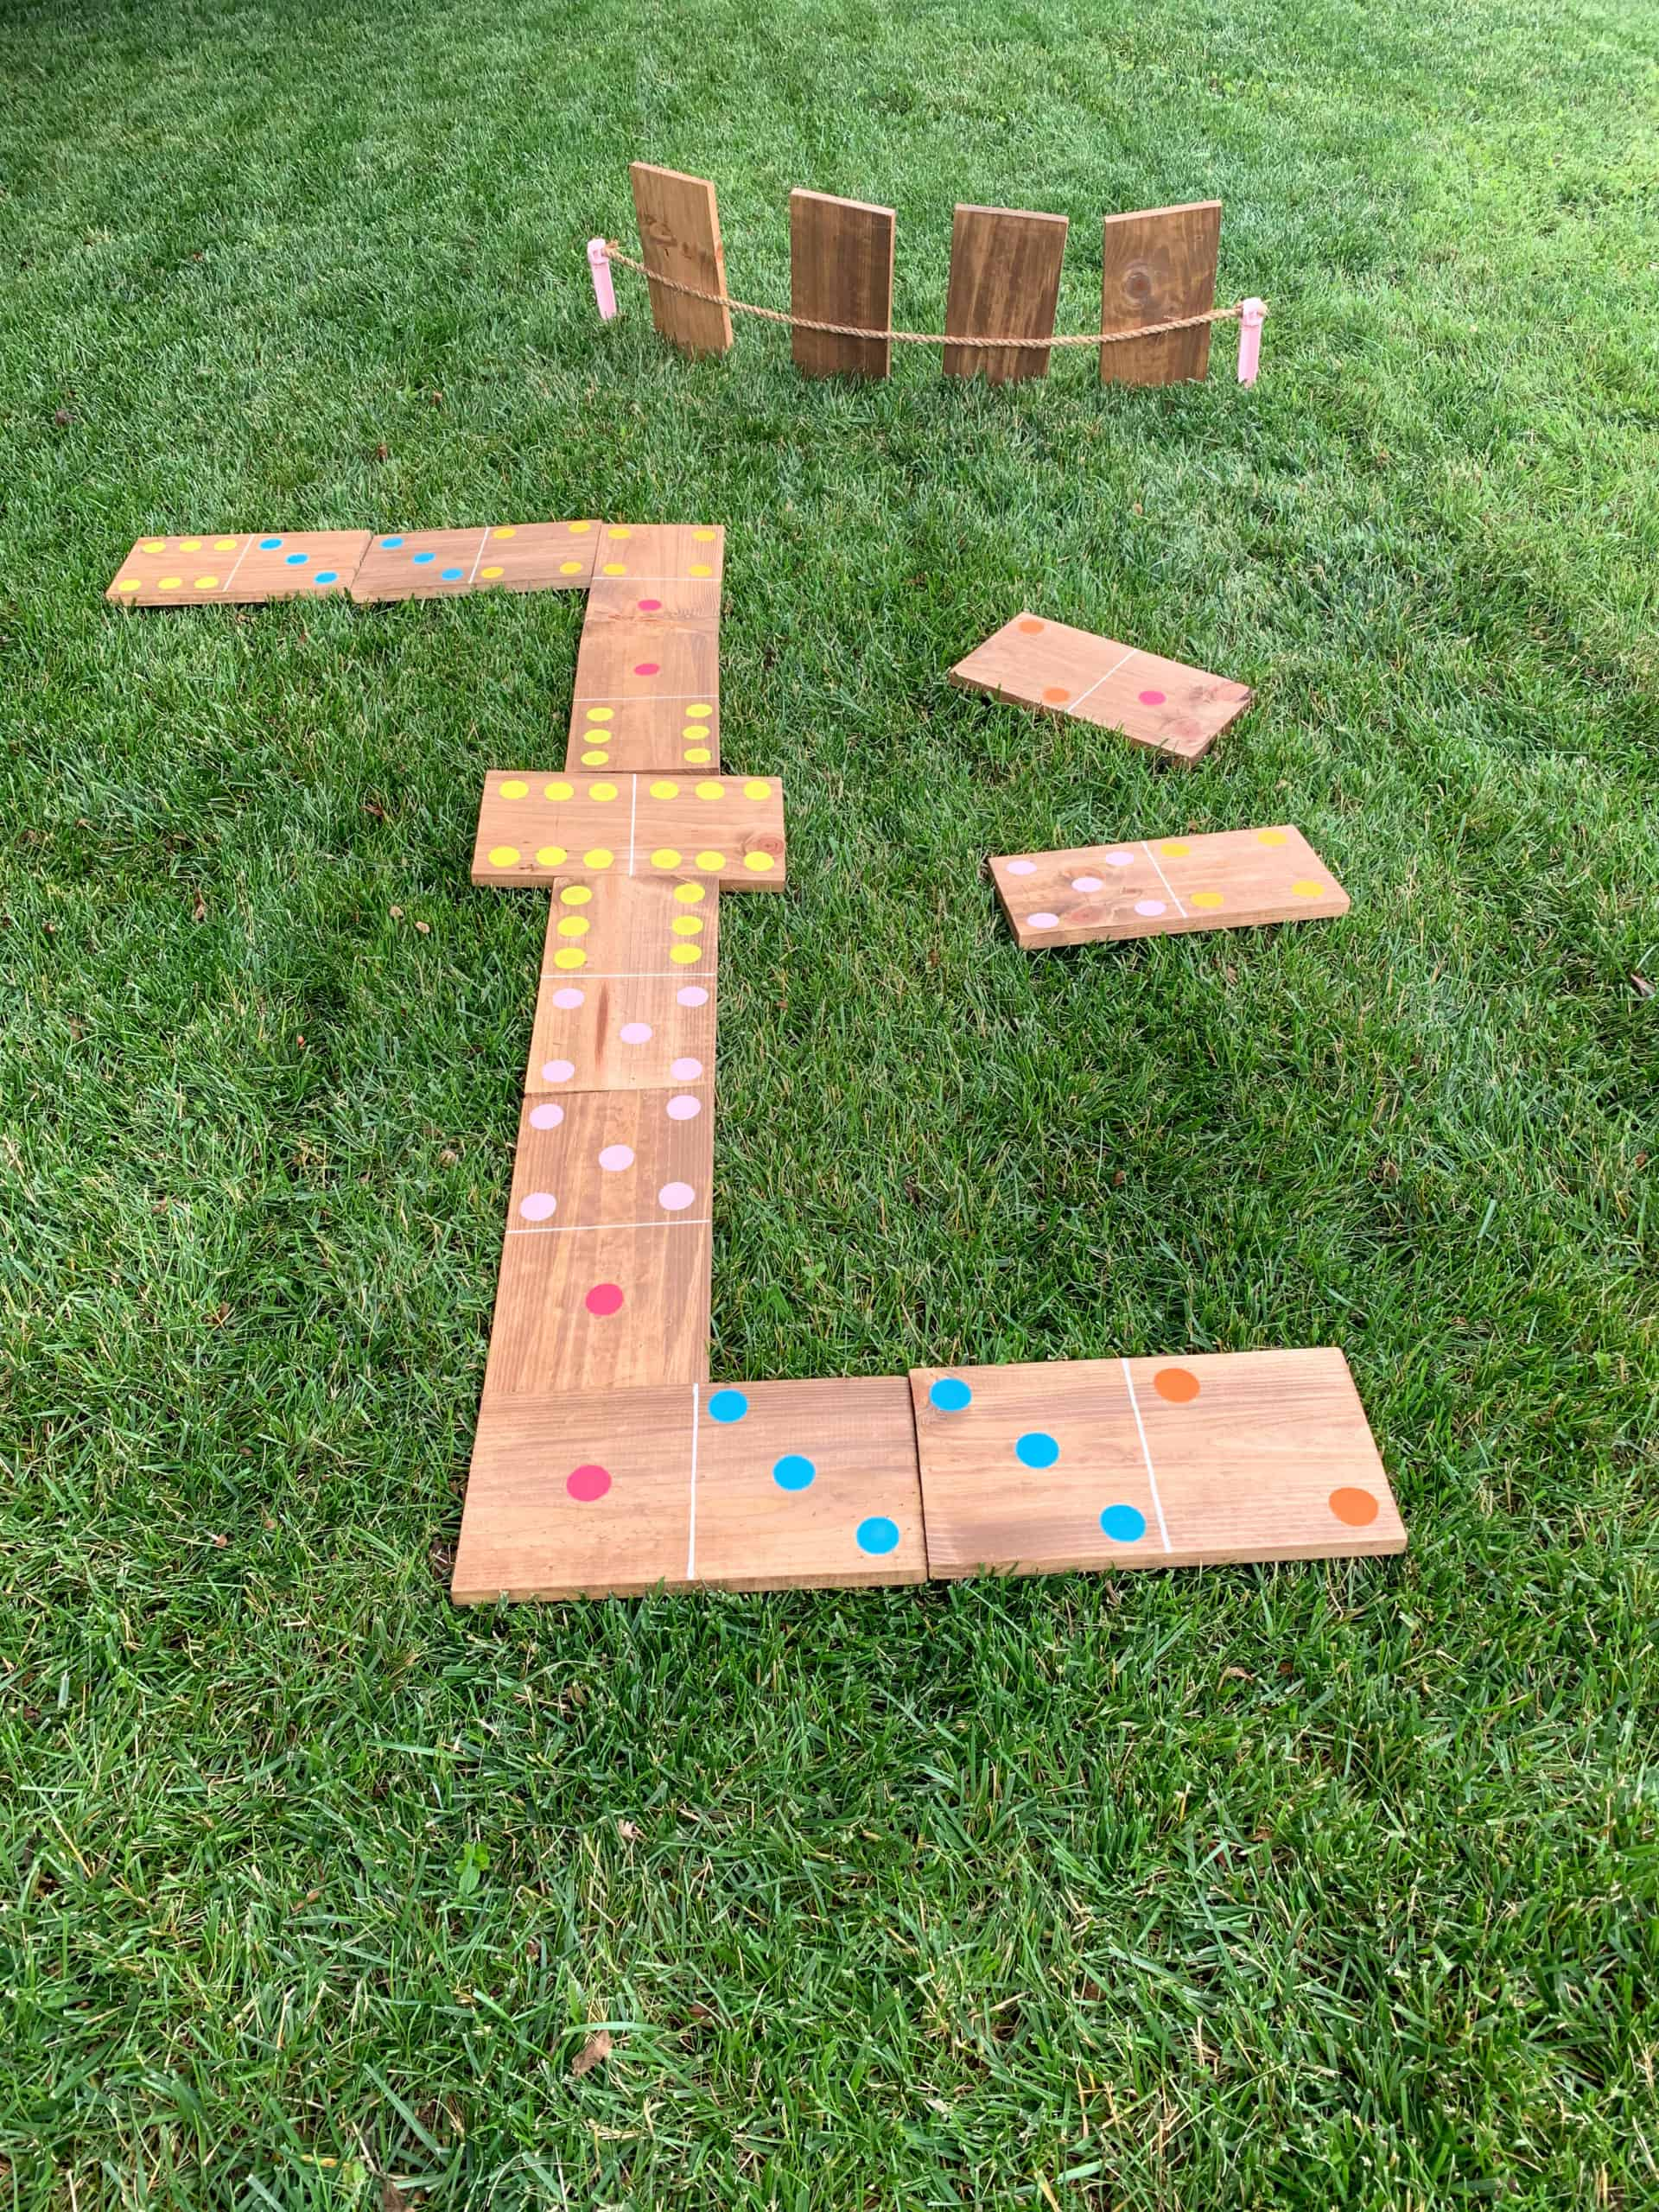 How to Play Yard Dominoes